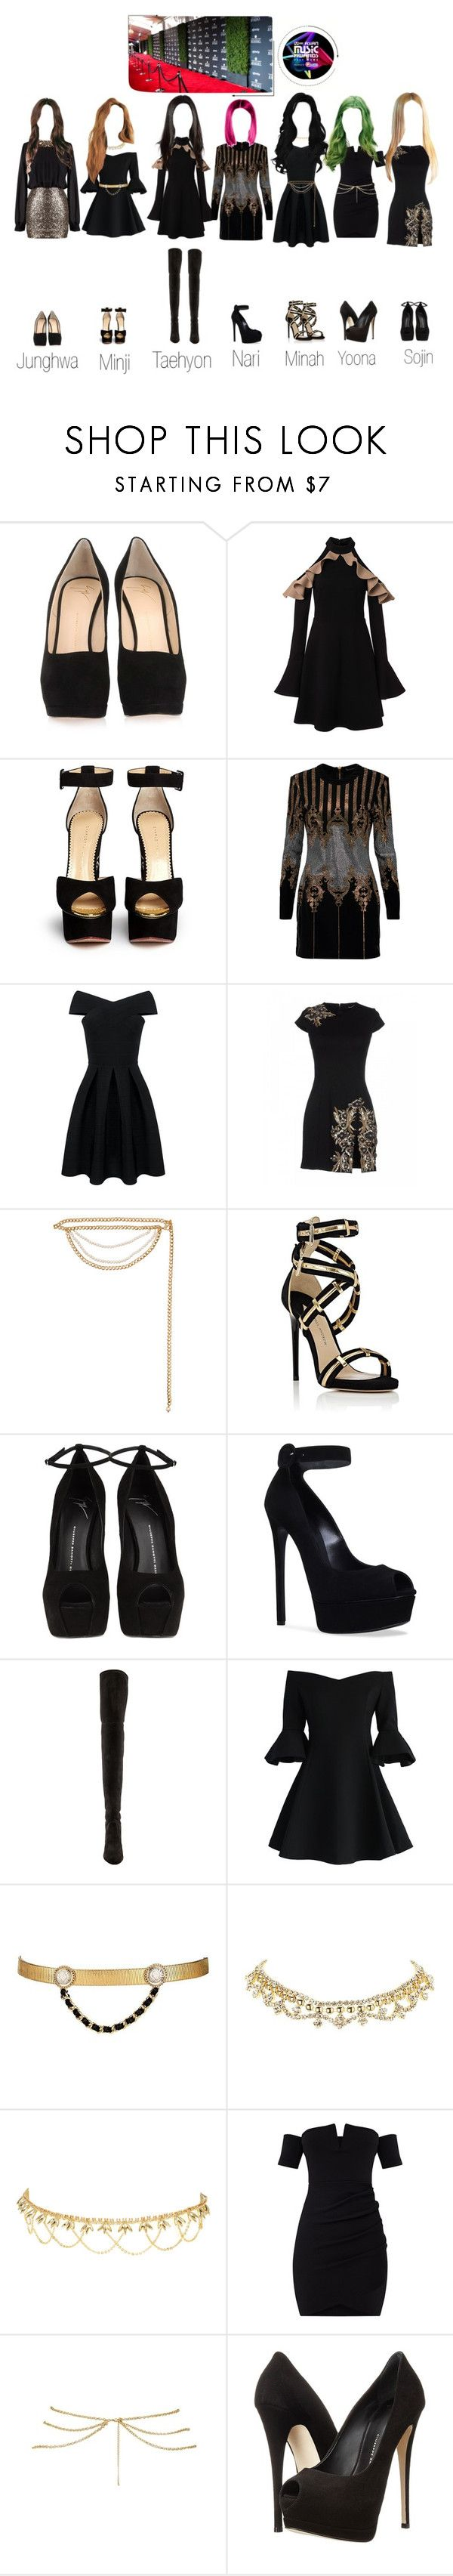 """""""GSG At The MAMA Awards [Red Carped]"""" by sunnie-hr ❤ liked on Polyvore featuring Giuseppe Zanotti, Charlotte Olympia, Balmain, Dsquared2, Magda Butrym, Paul Andrew, Casadei, Stuart Weitzman, Chicwish and Maison Mayle"""